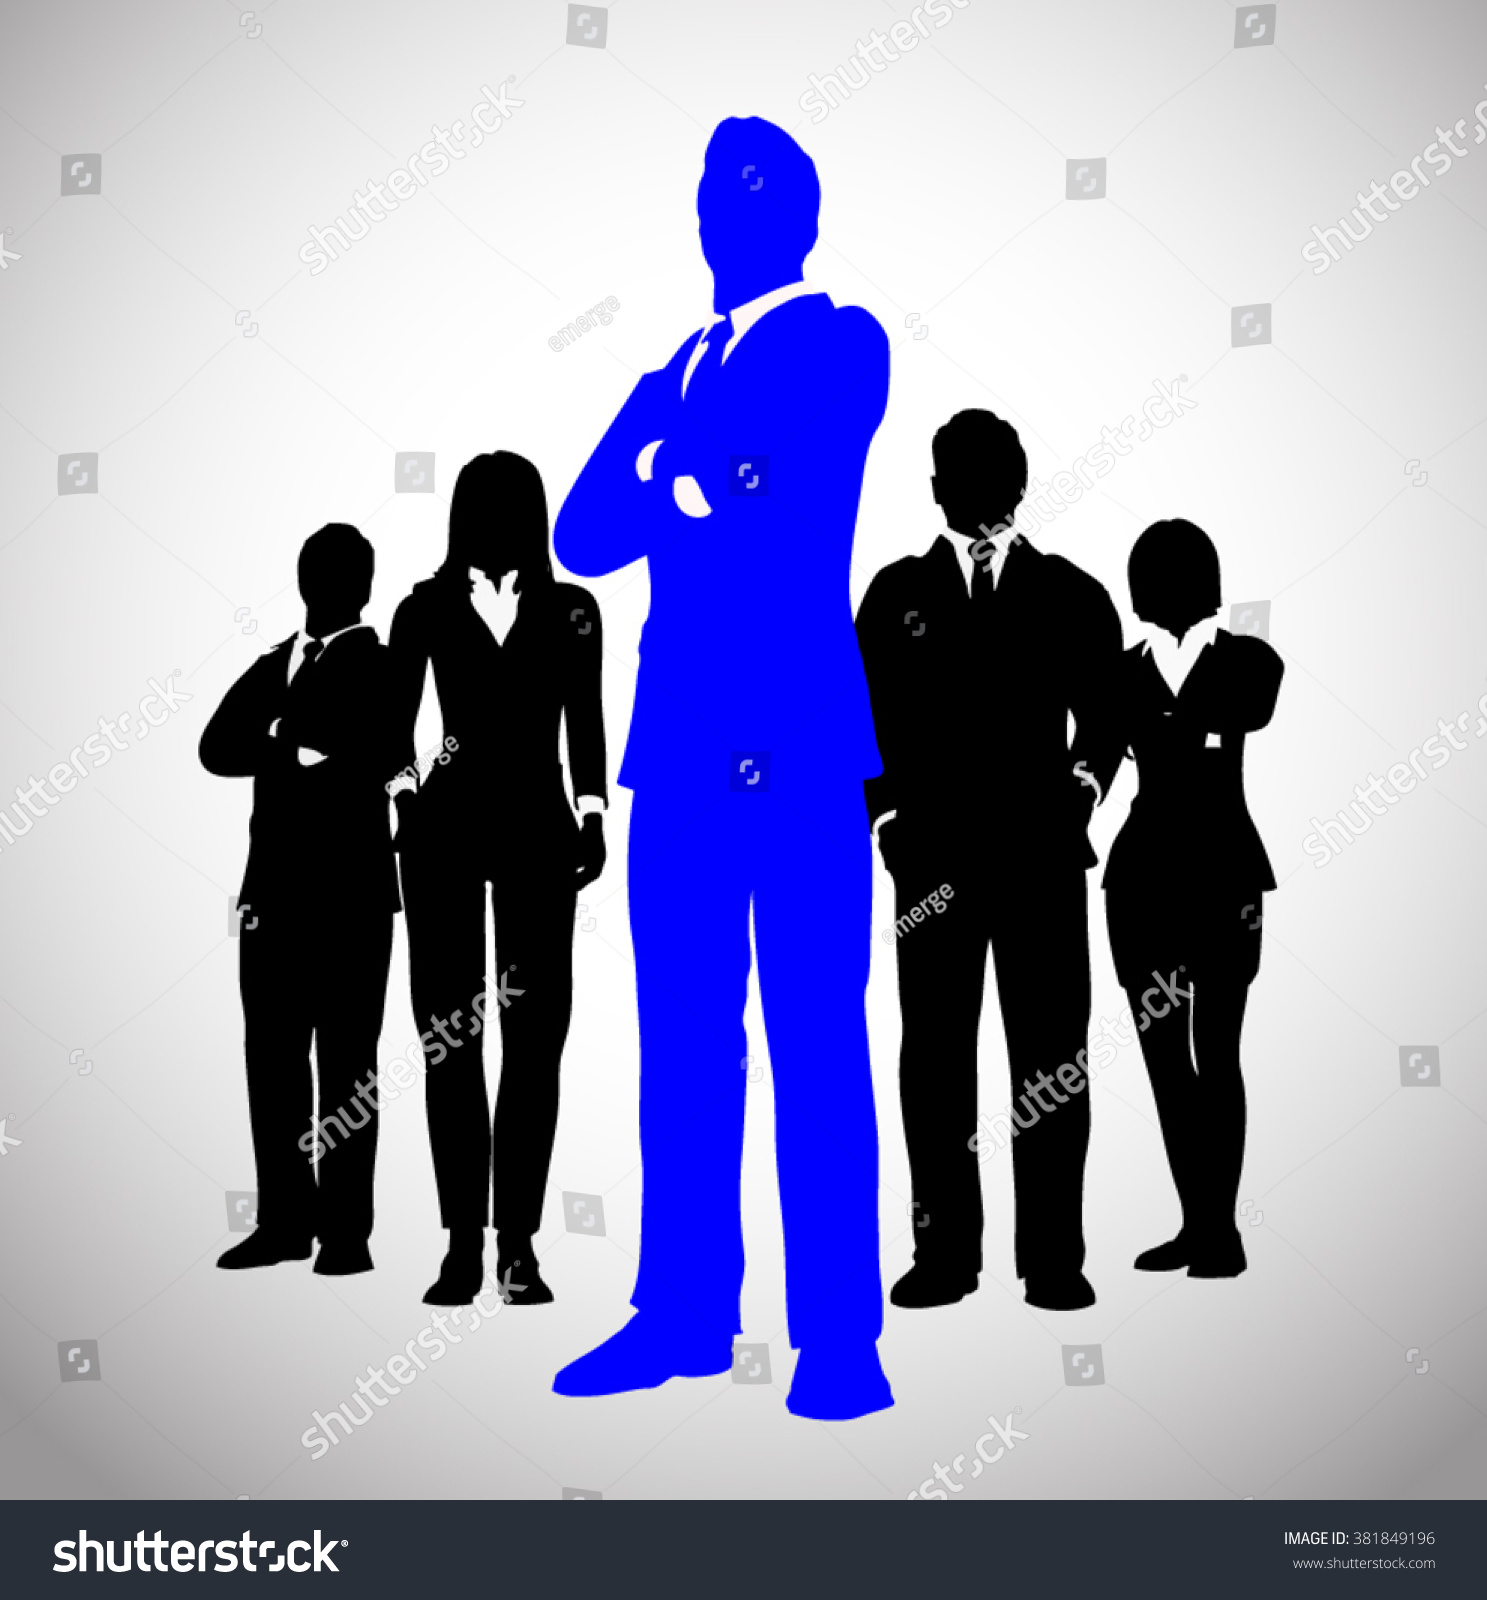 successful team leader blue team successful stock vector  successful team leader in blue a team of successful executives led by a great and